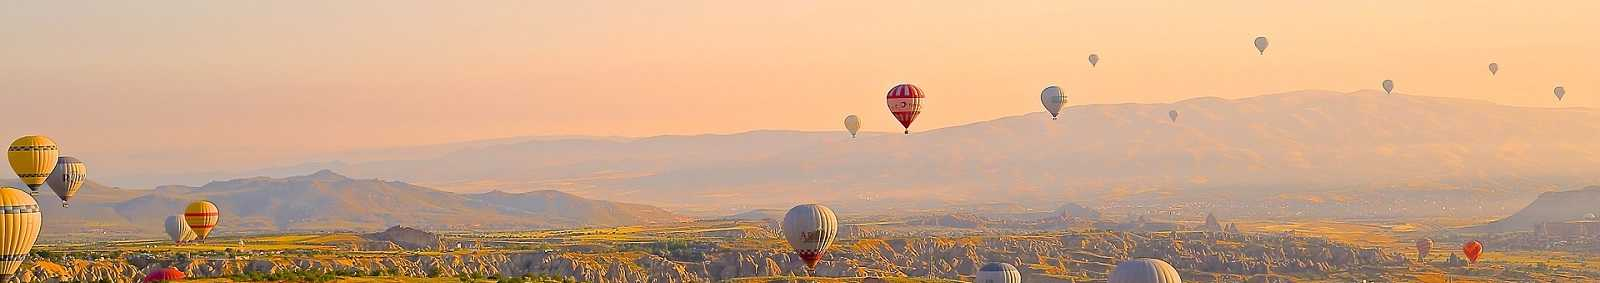 Hot air balloon ride over Cappadocia, Turkey